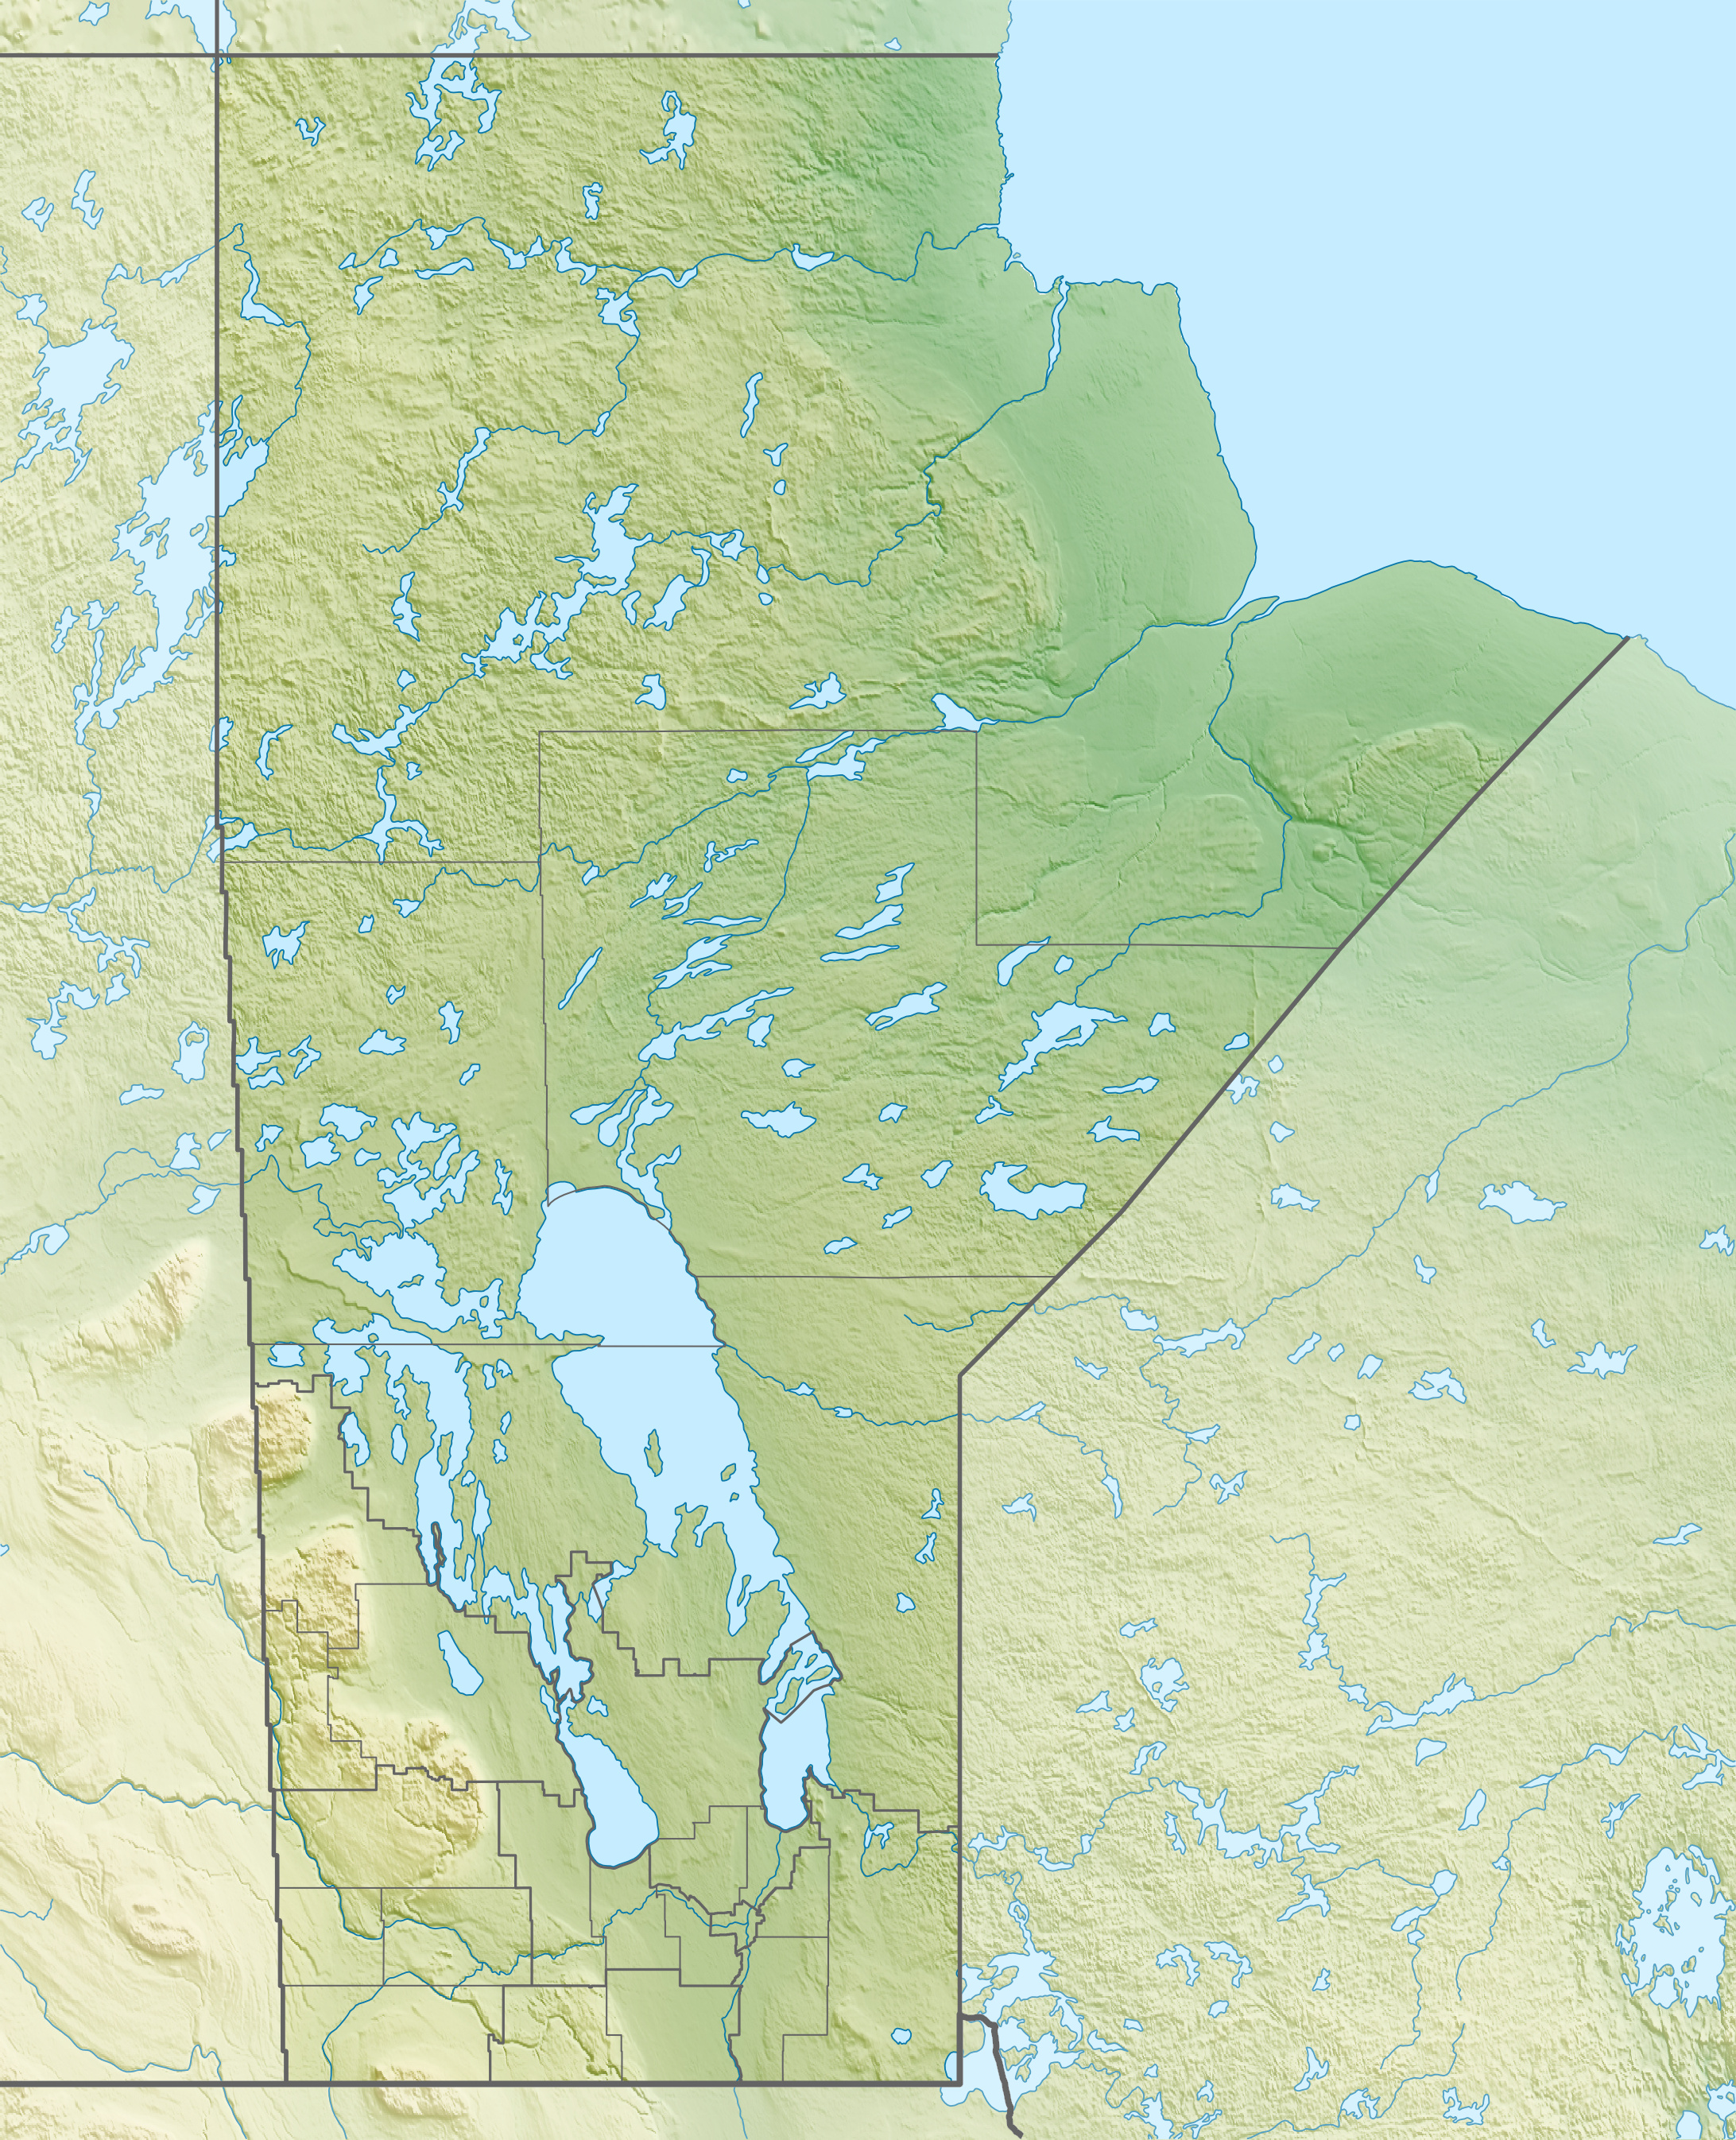 FileCanada Manitoba Relief Location Mapjpg Wikimedia Commons - Relief map of canada